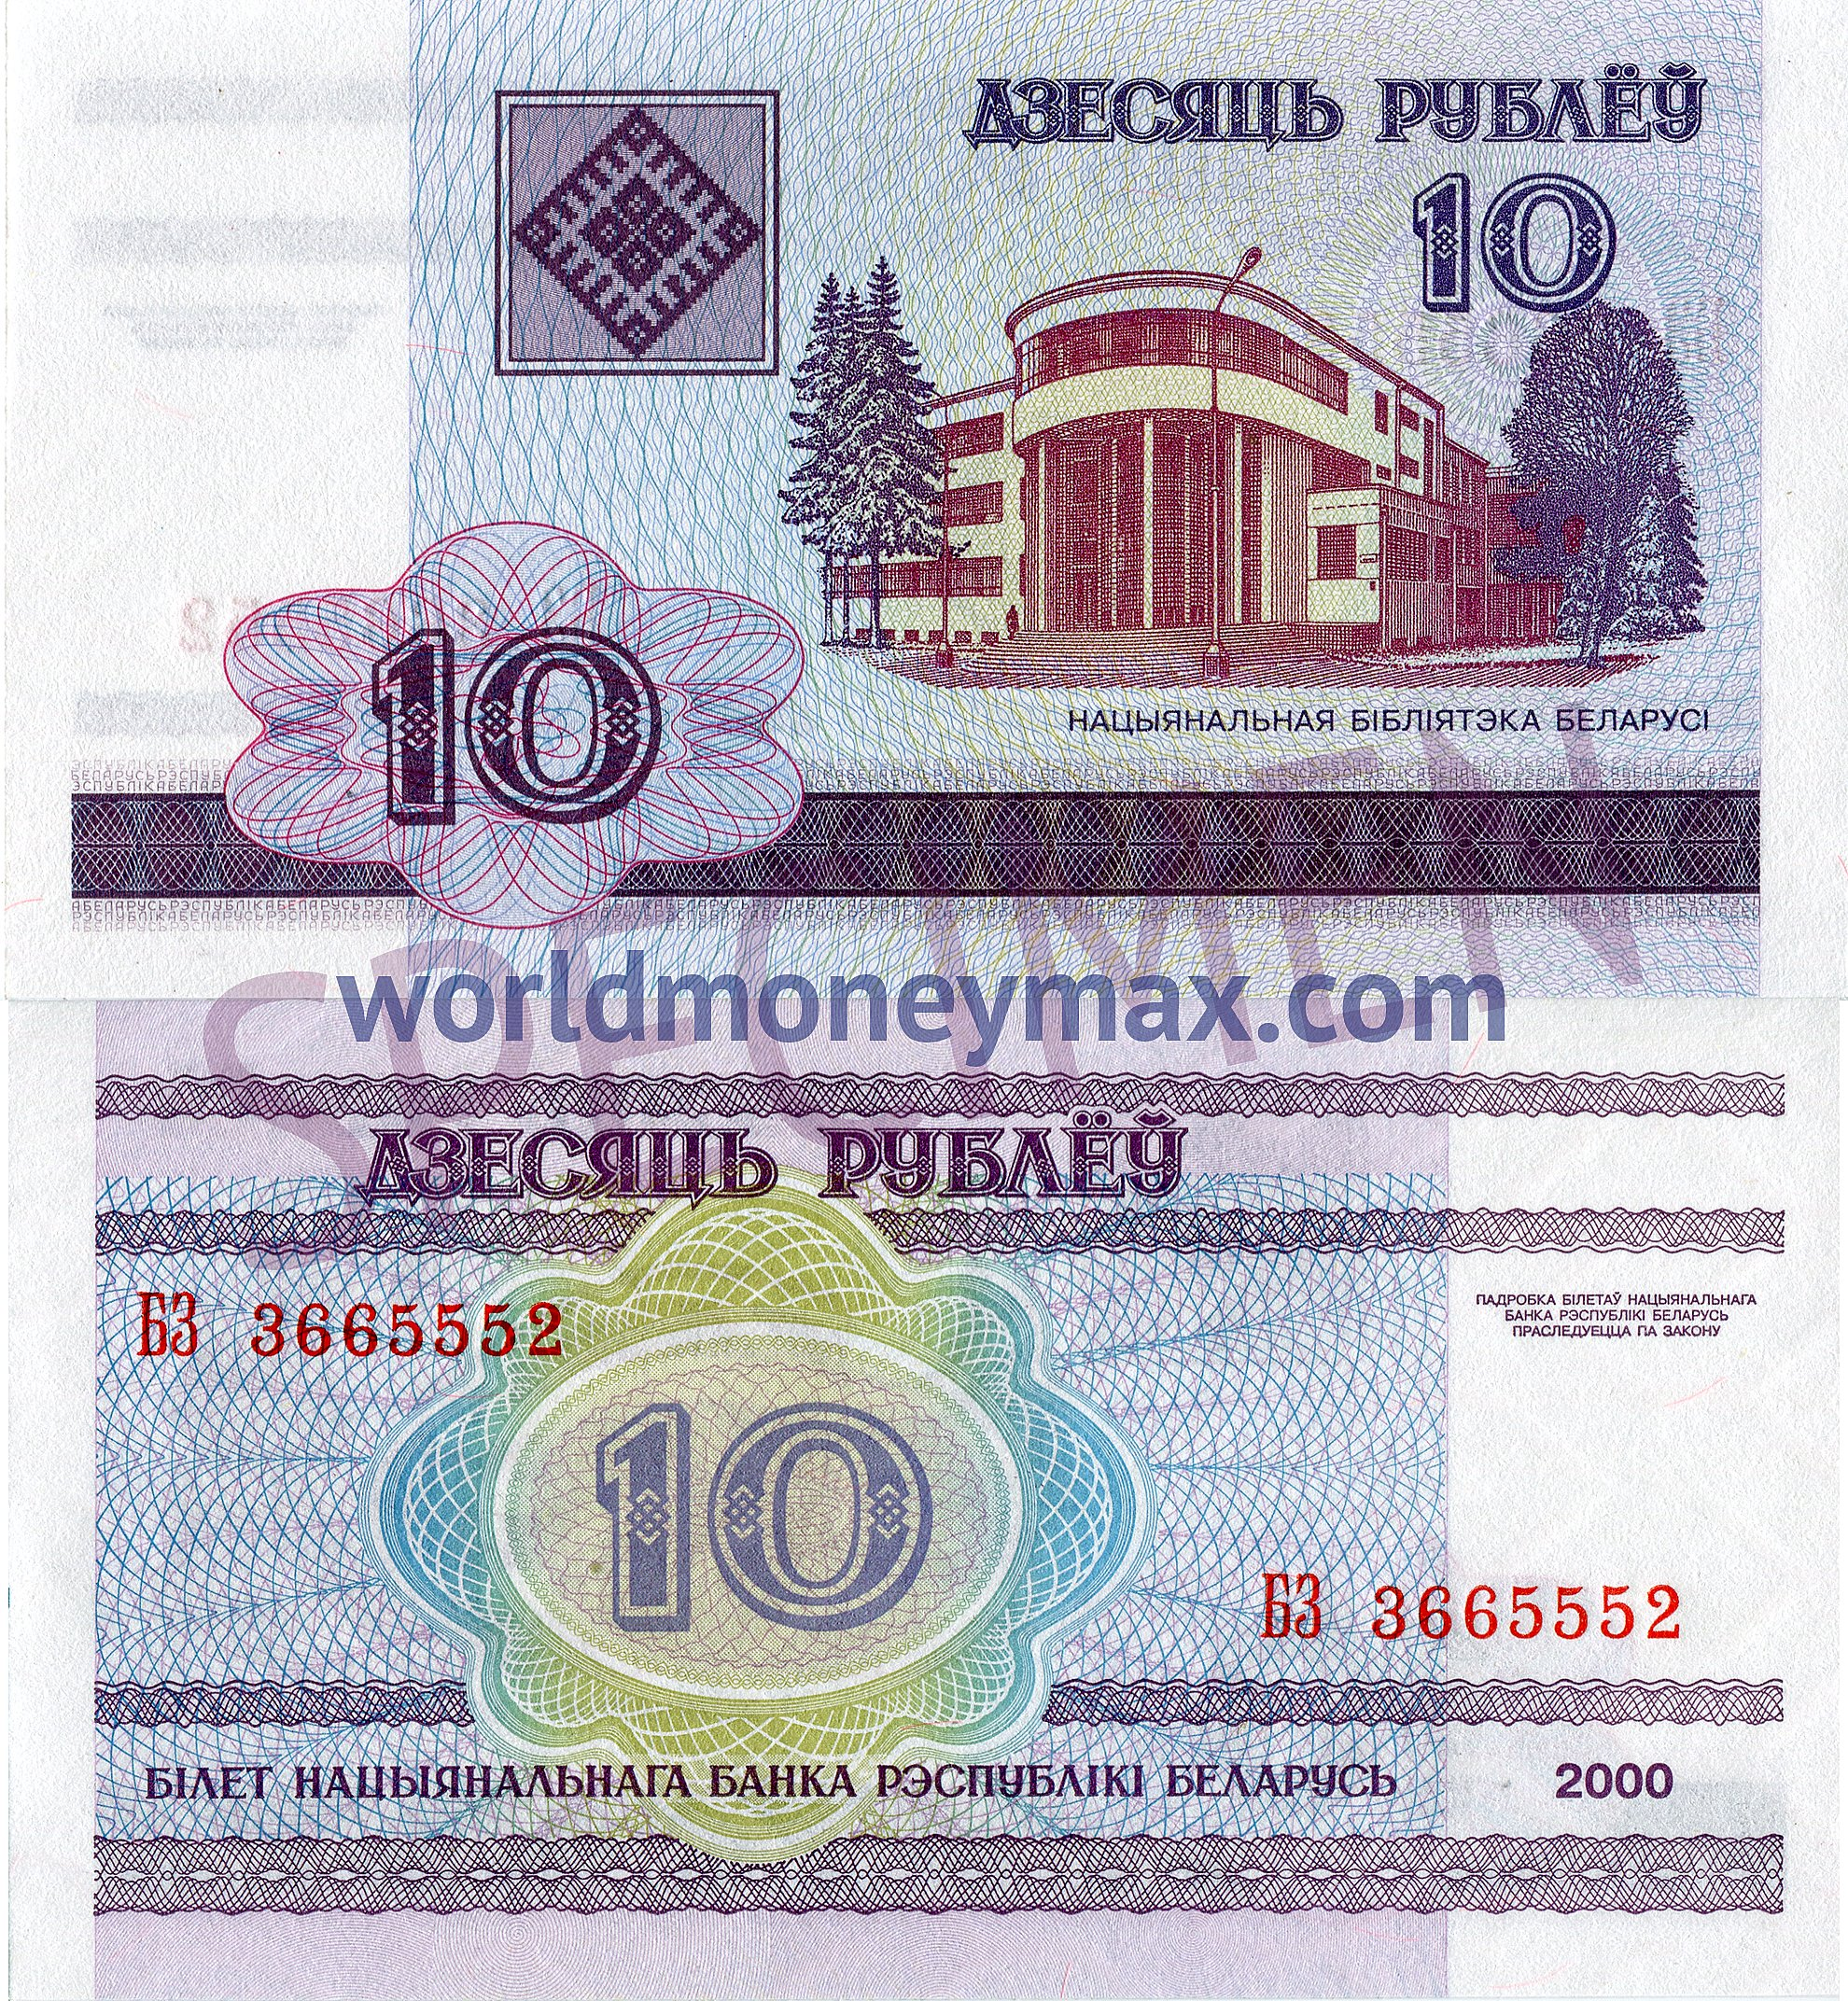 World money max